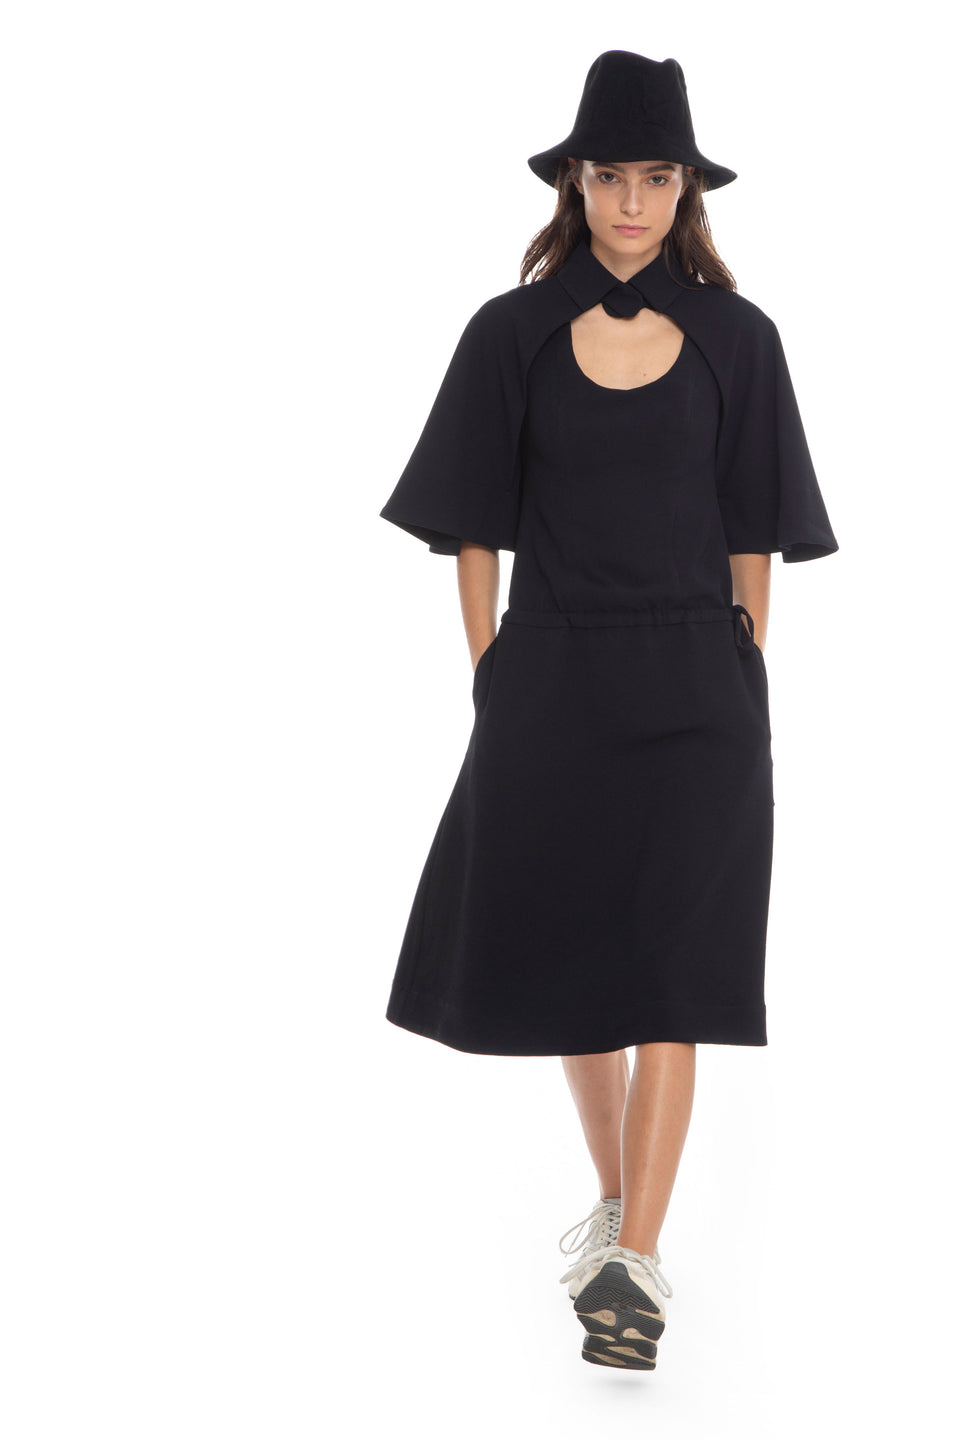 NINObrand Black Dress With Cape draw string and side pockets